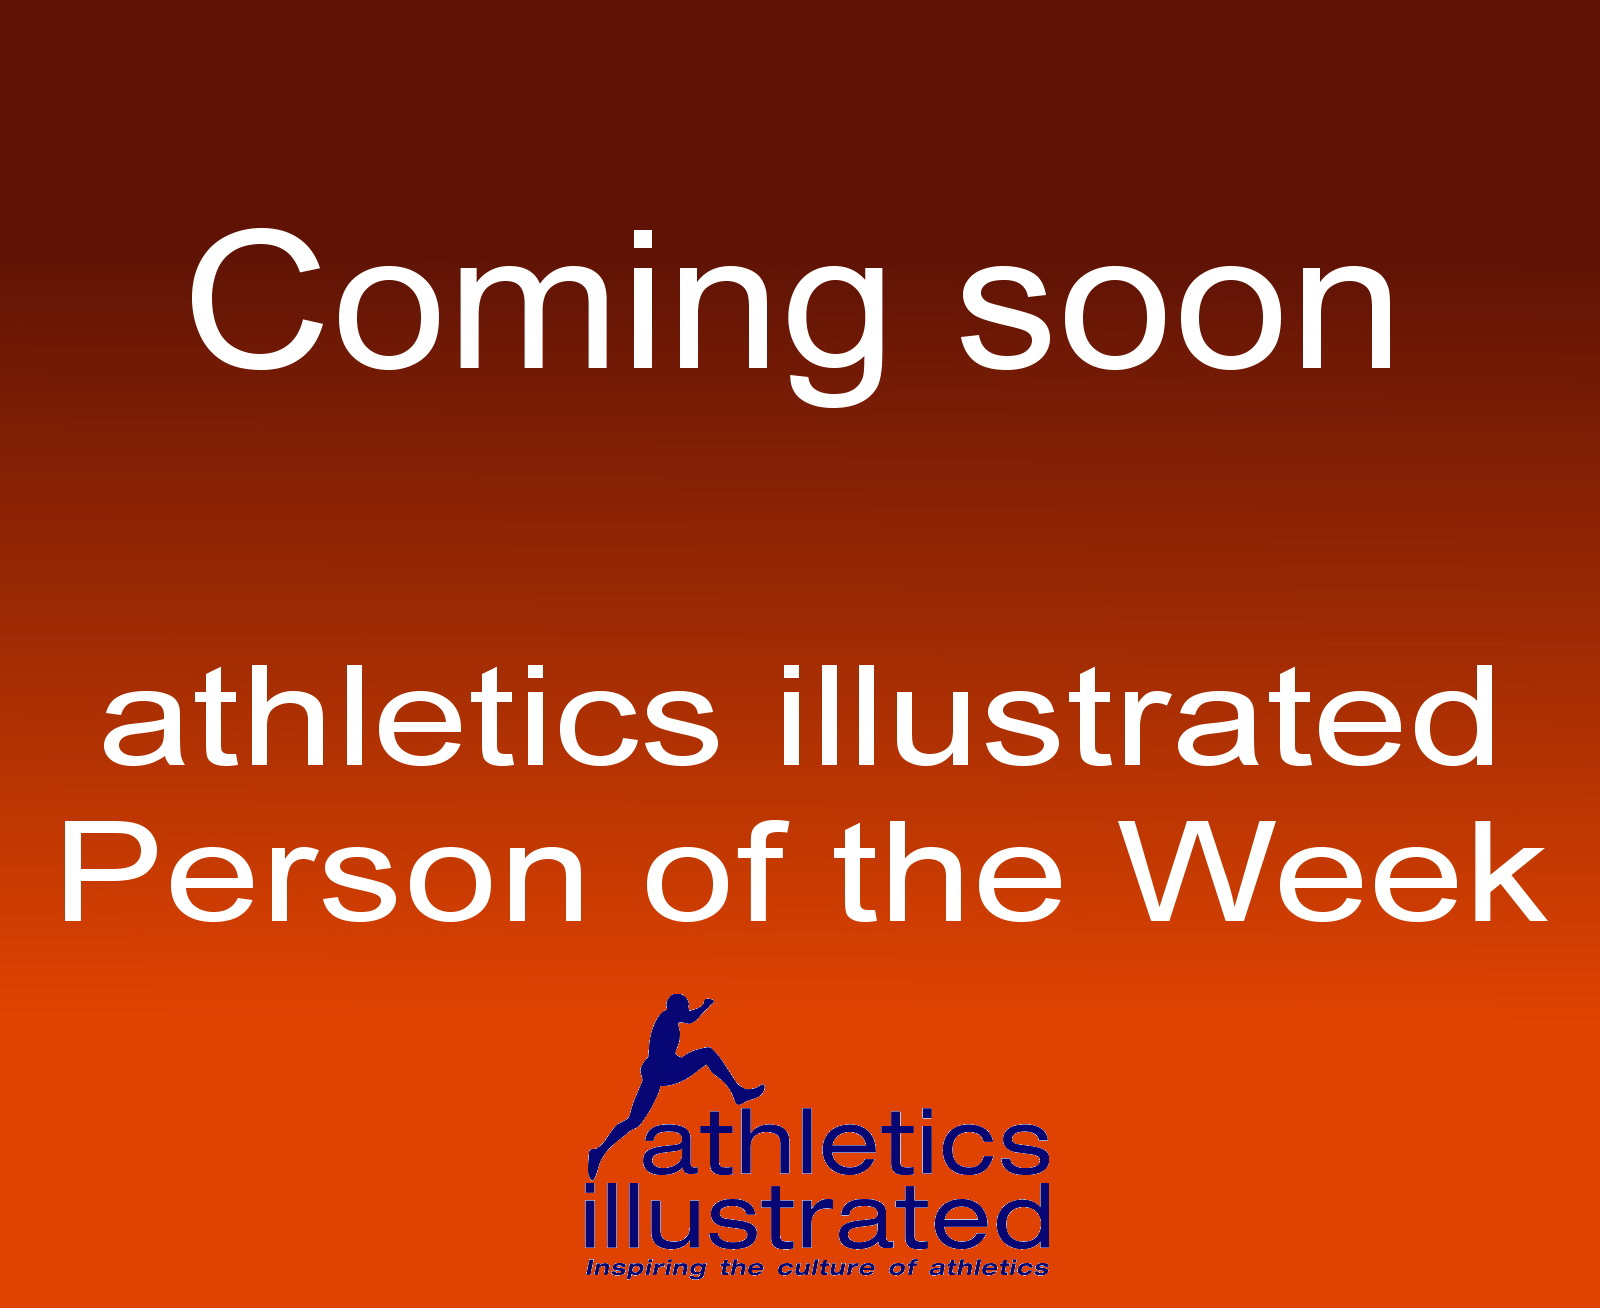 https://athleticsillustrated.com/athletics-illustrated-person-of-the-week/